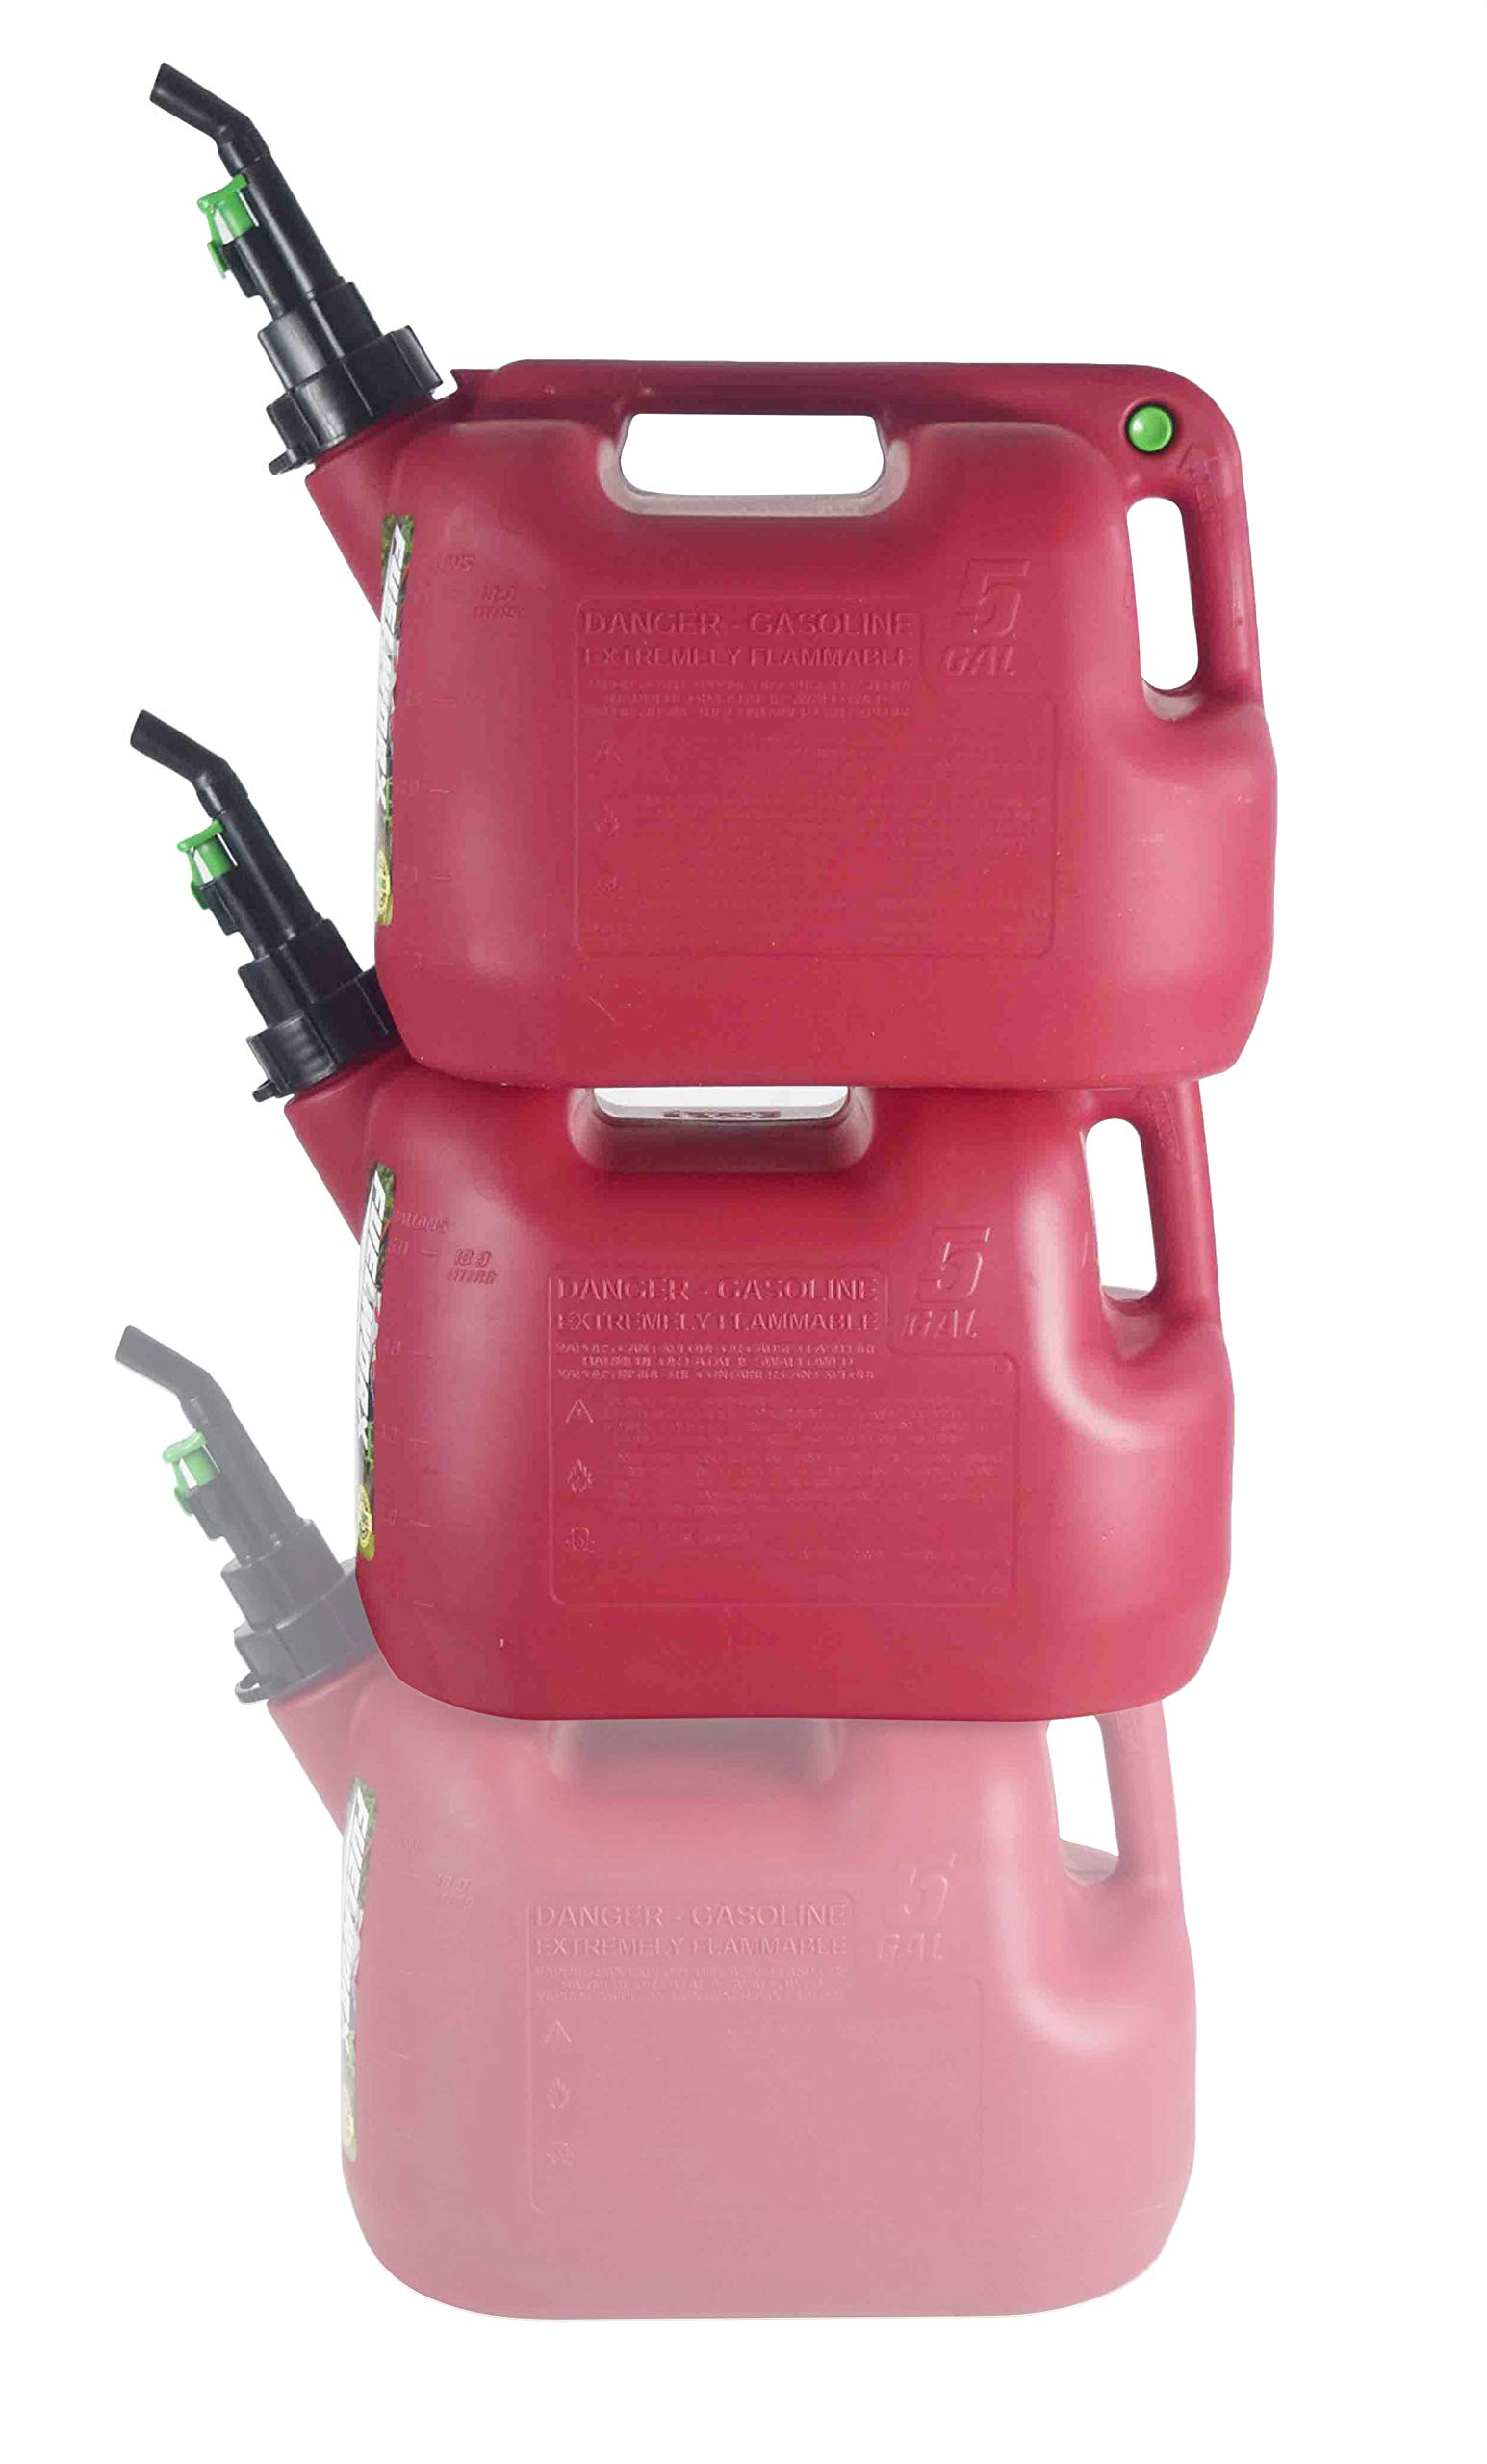 Fuelworx Red 5 Gallon Stackable Fast Pour Gas Fuel Can CARB Compliant Made in The USA (5 Gallon Gas Cans 2 Pack) by Fuelworx